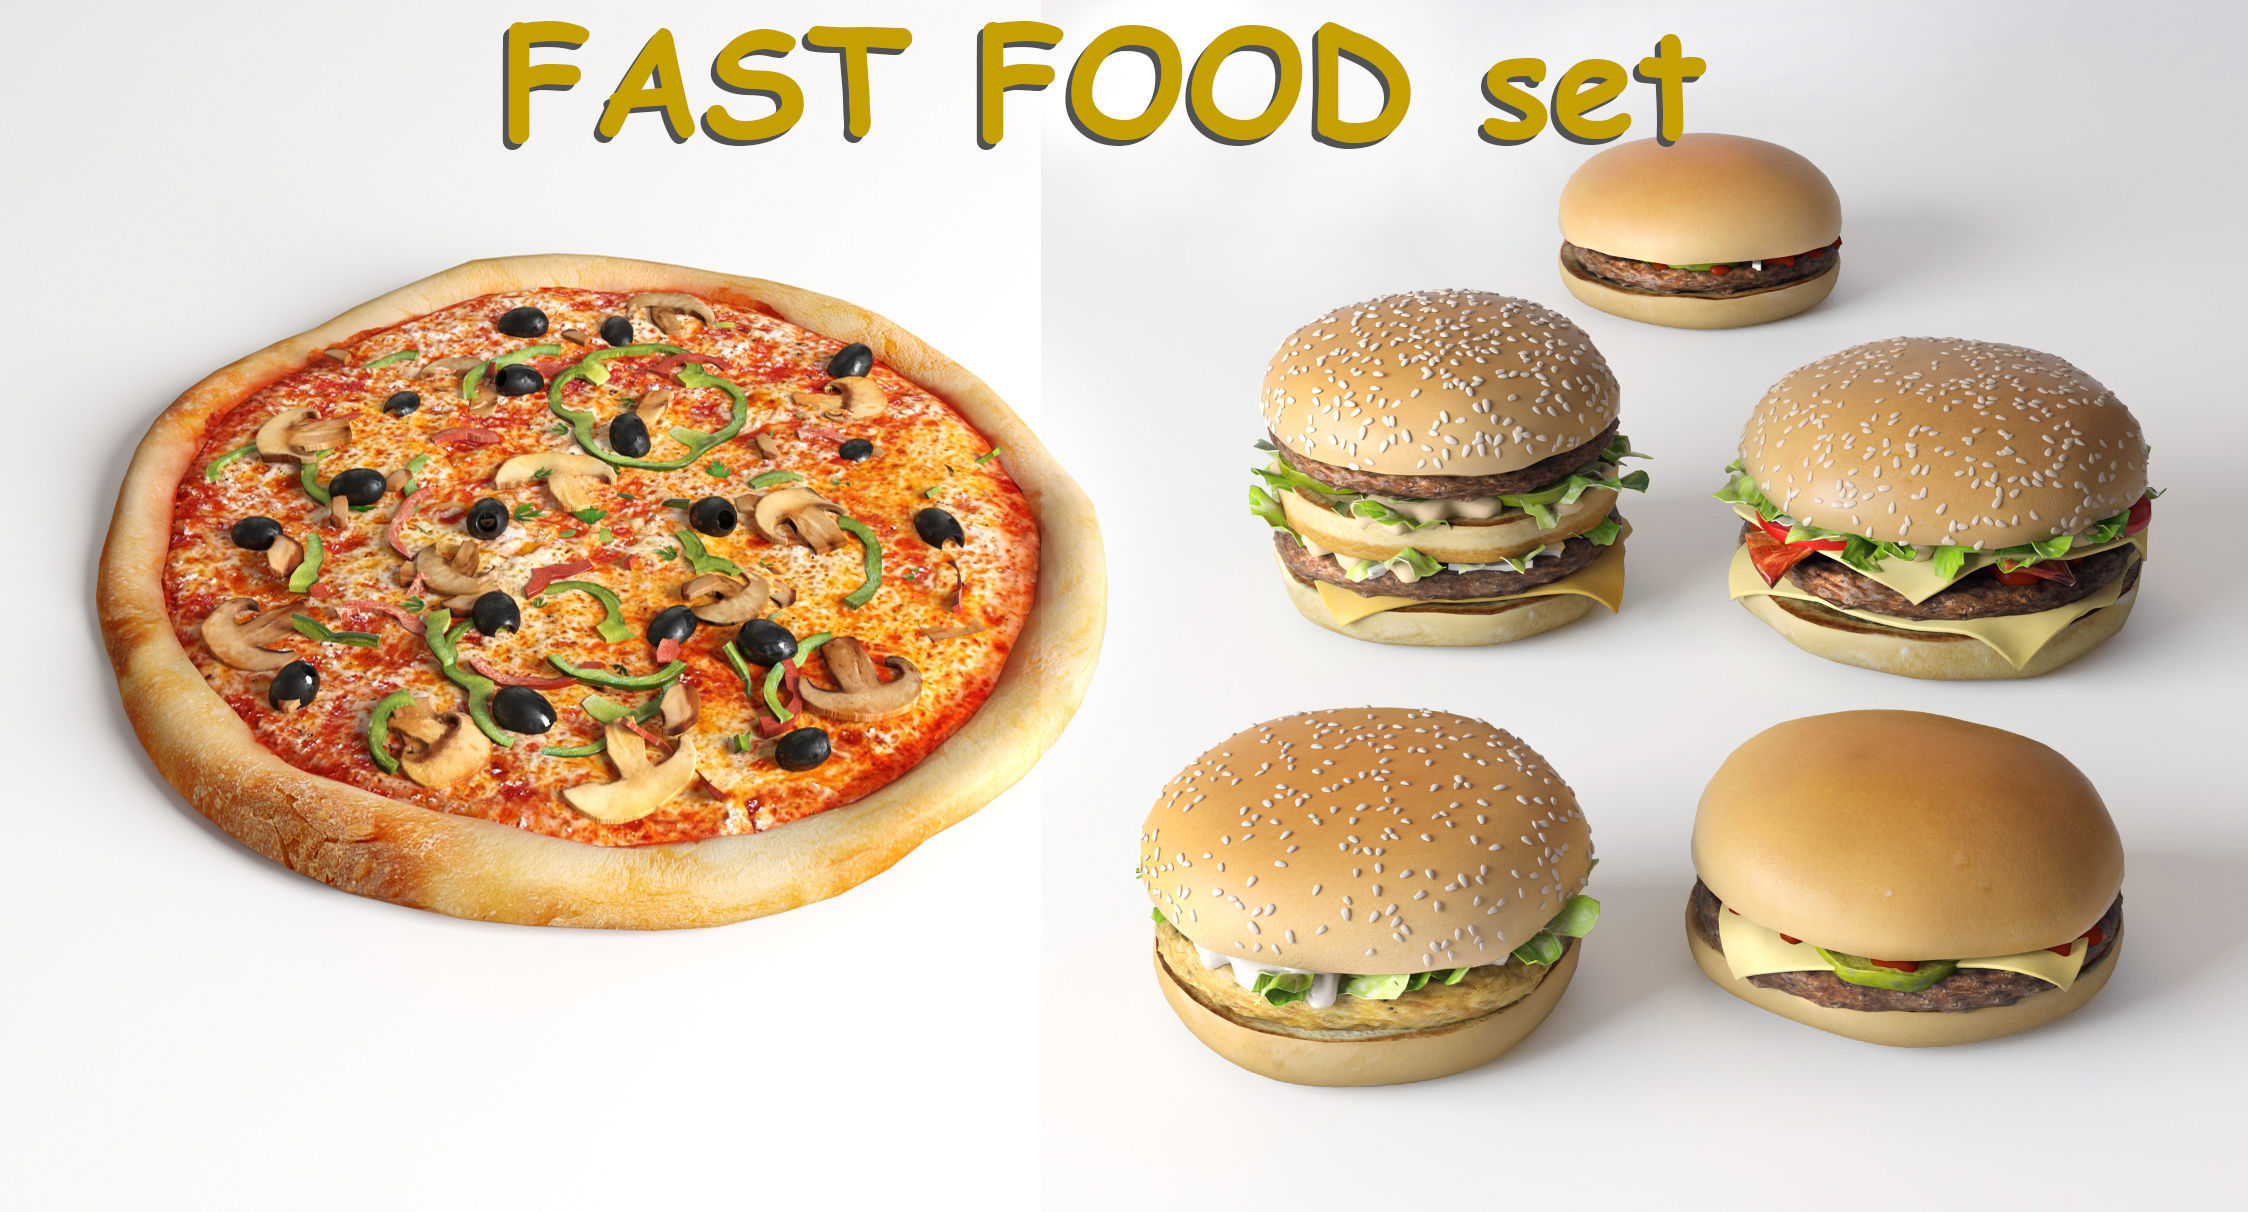 Burgers collection and pizza - FAST FOOD set 1